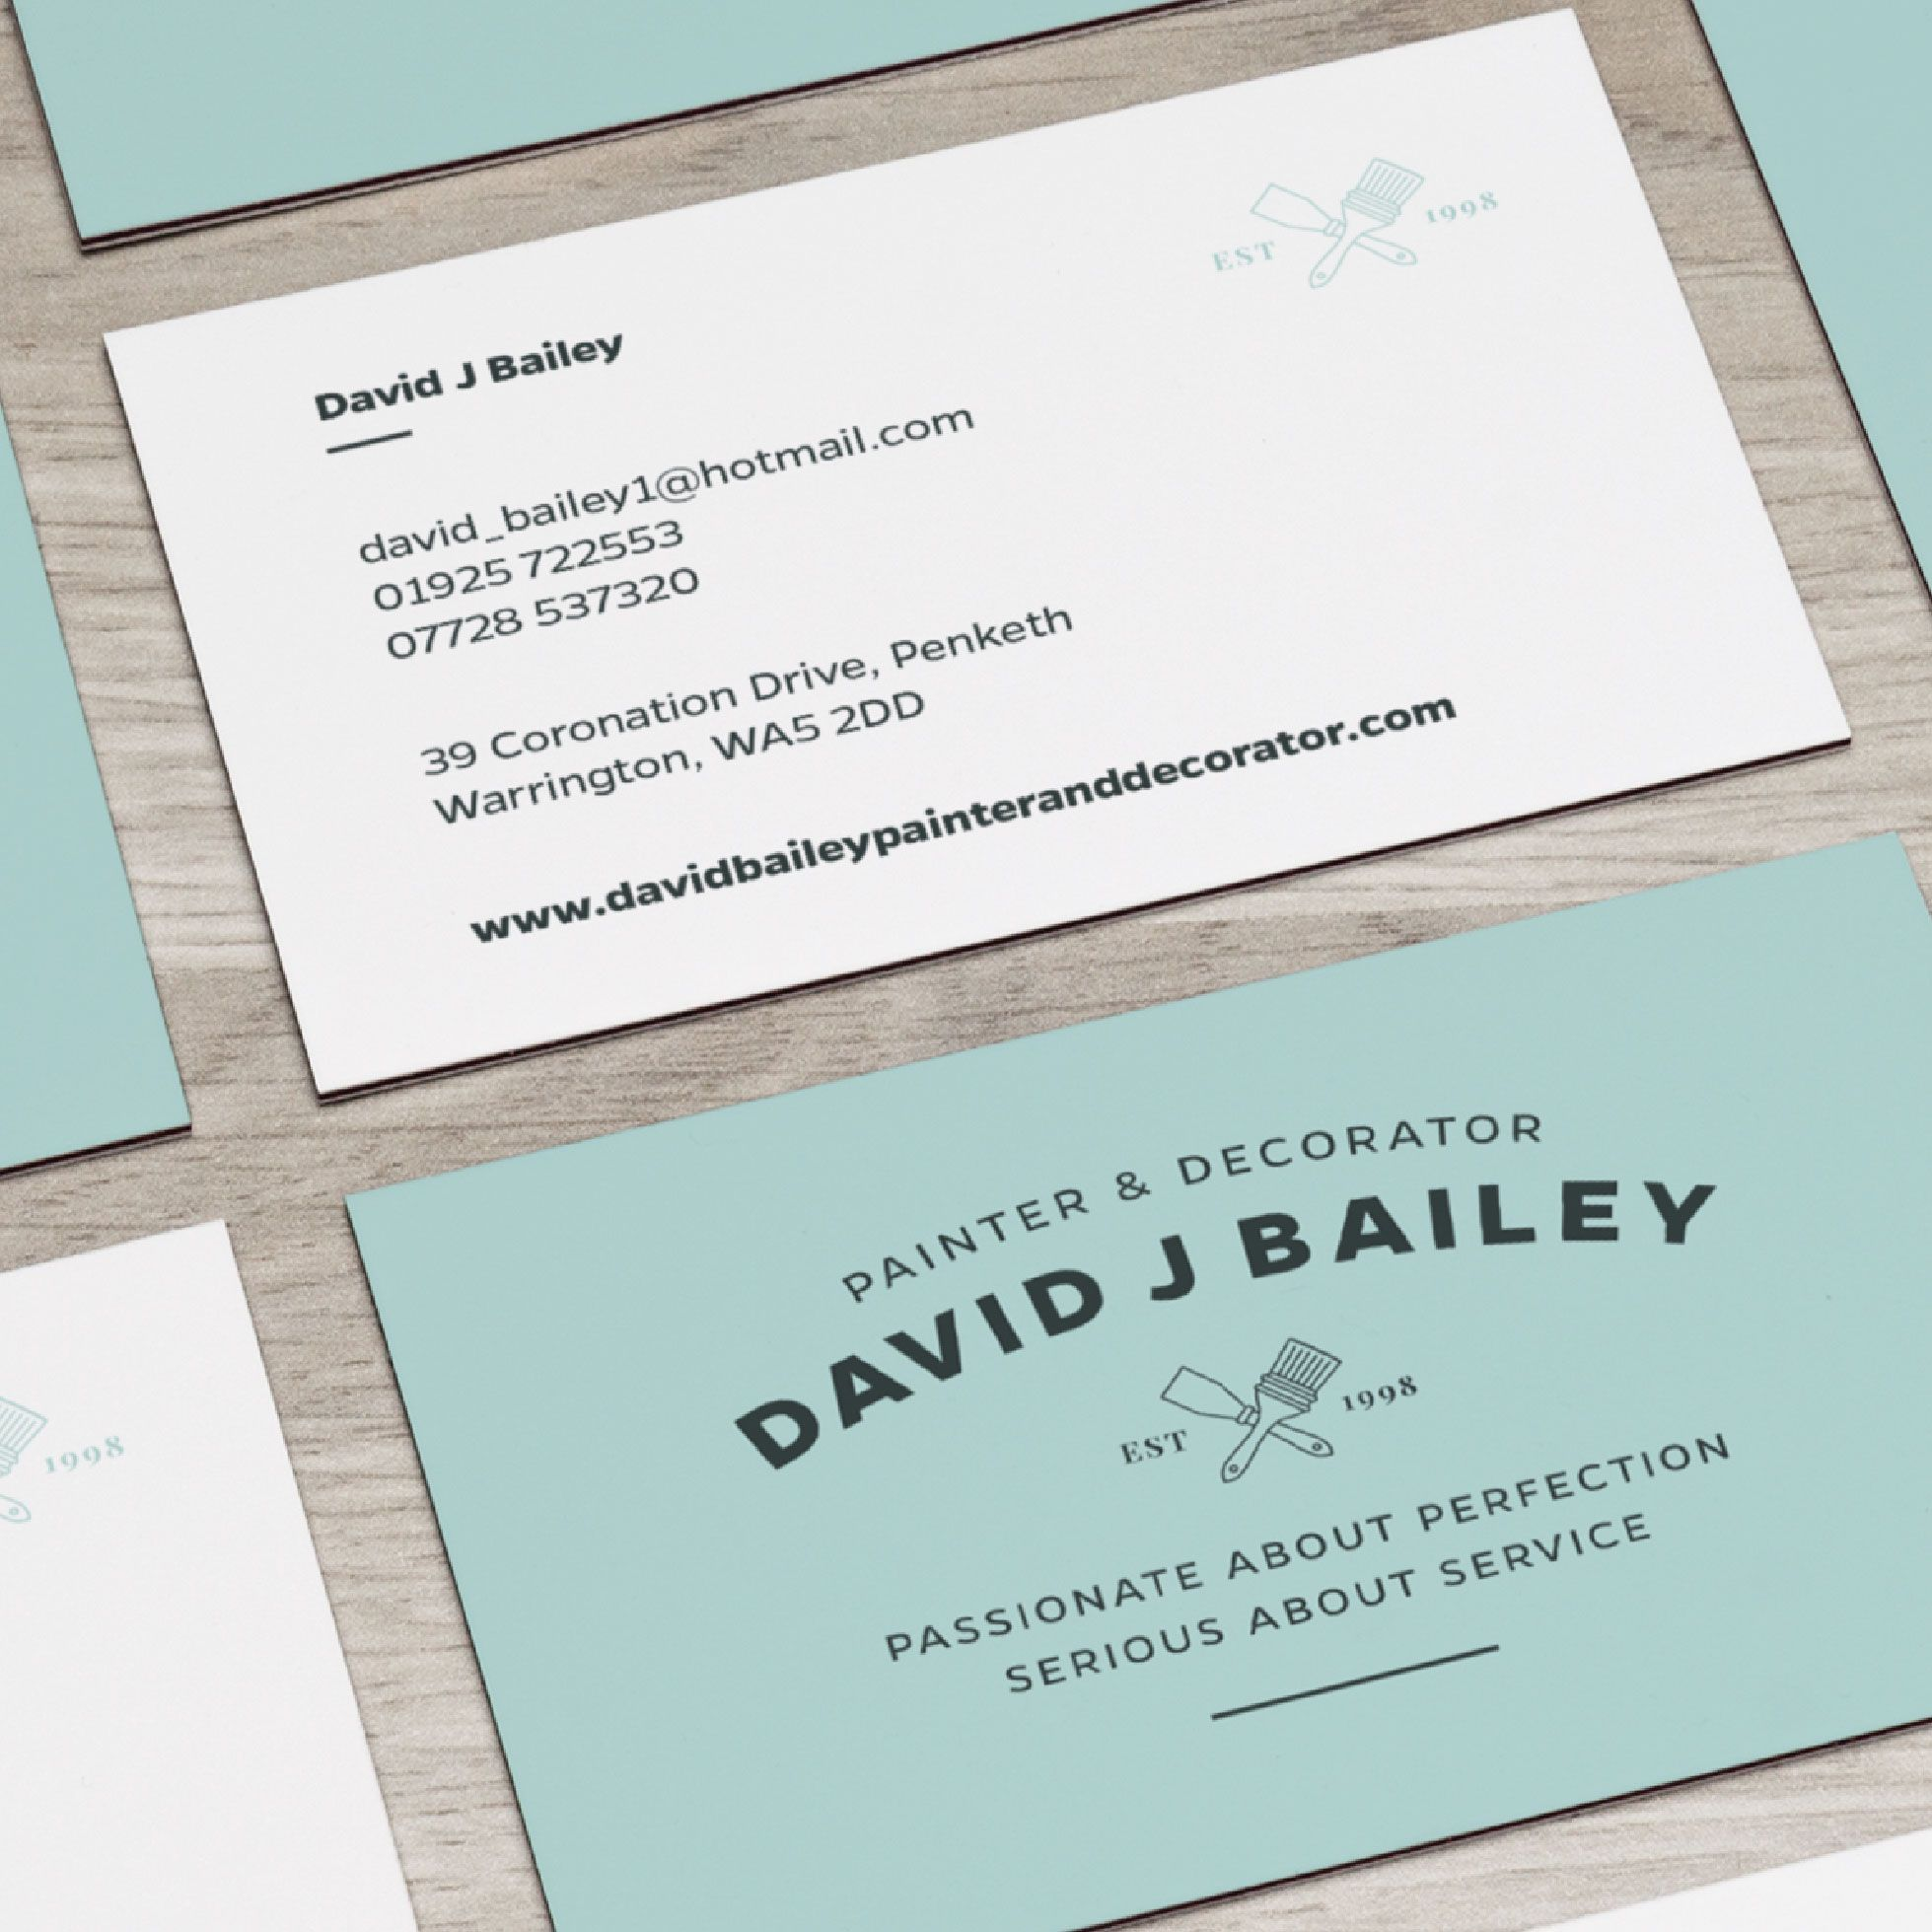 Painter And Decorator Branding And Logo Design Business Card Print Design Business Cards Layout Printing Business Cards Painter And Decorator